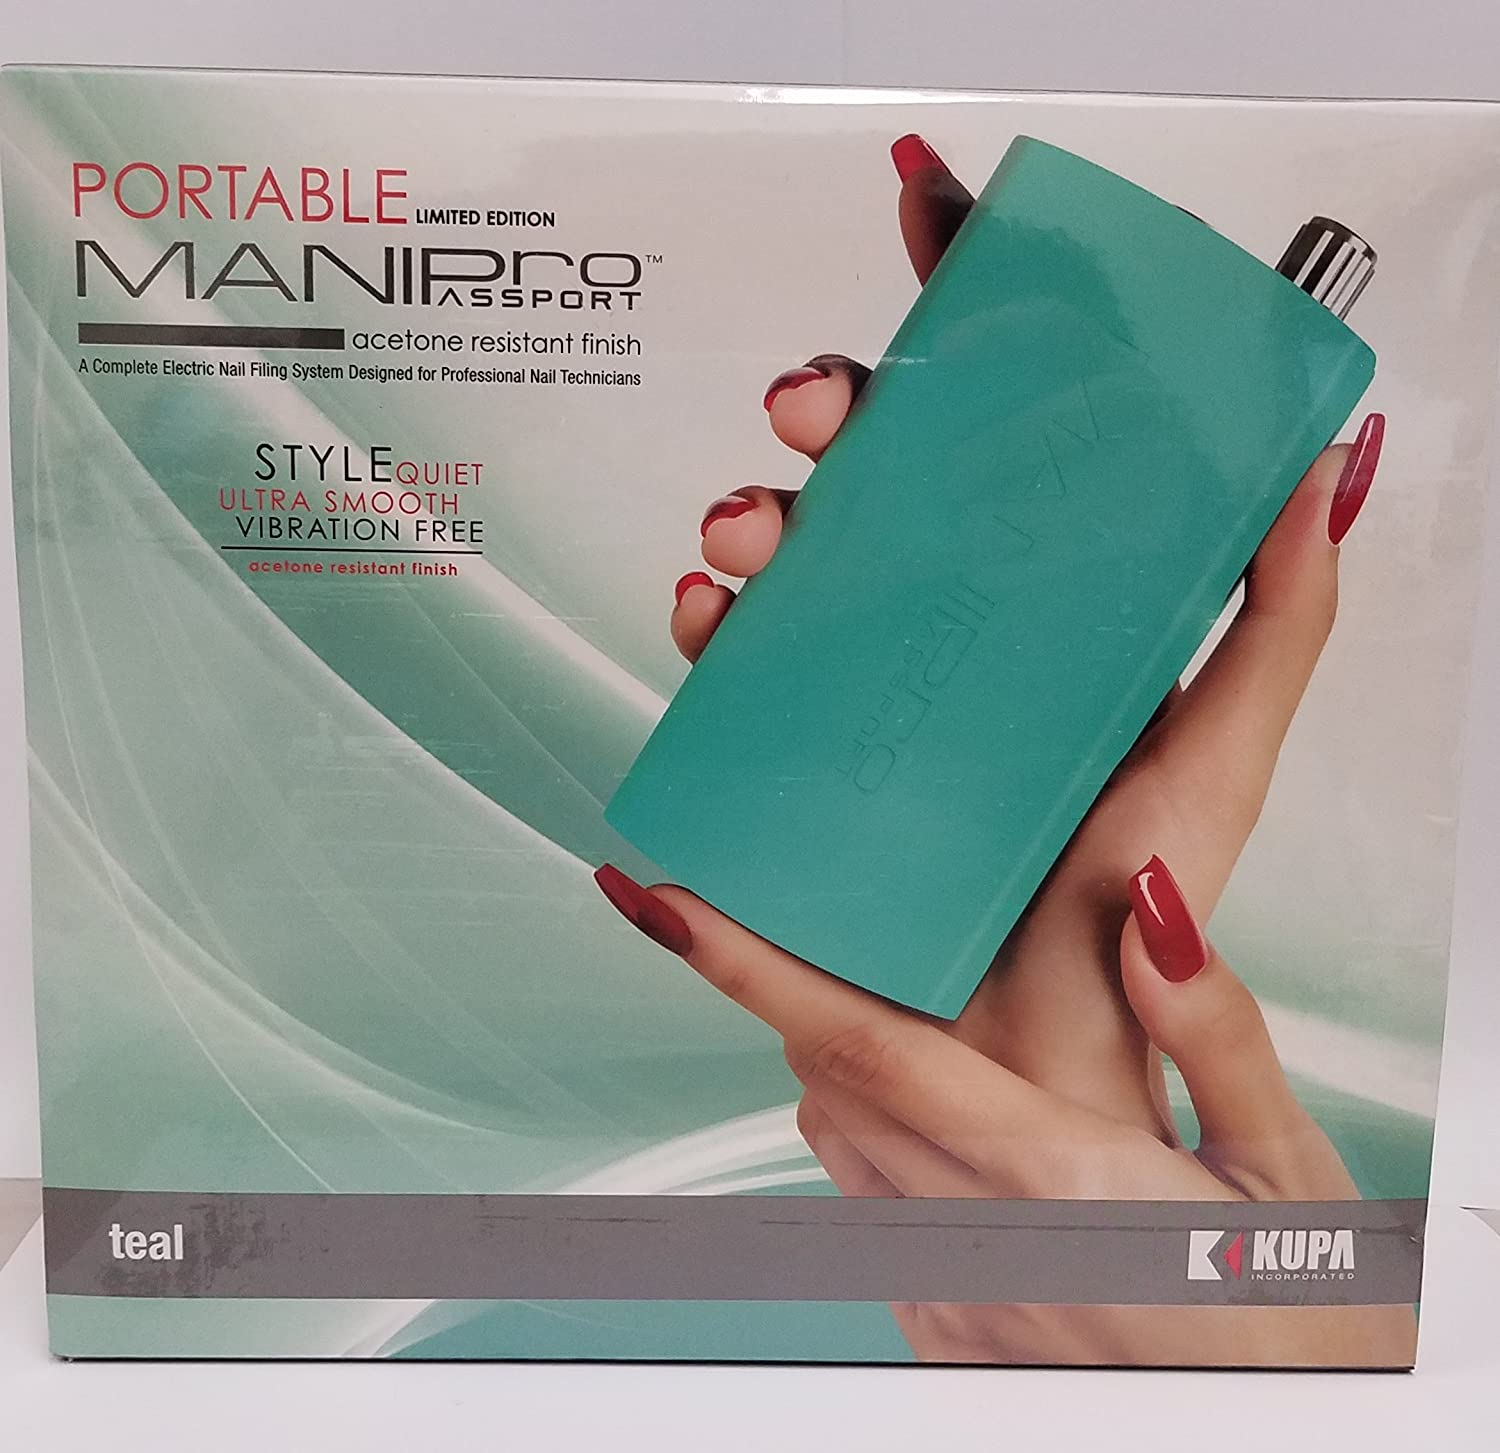 Amazon.com : Mani-pro Passport Portable Electric Nail File \